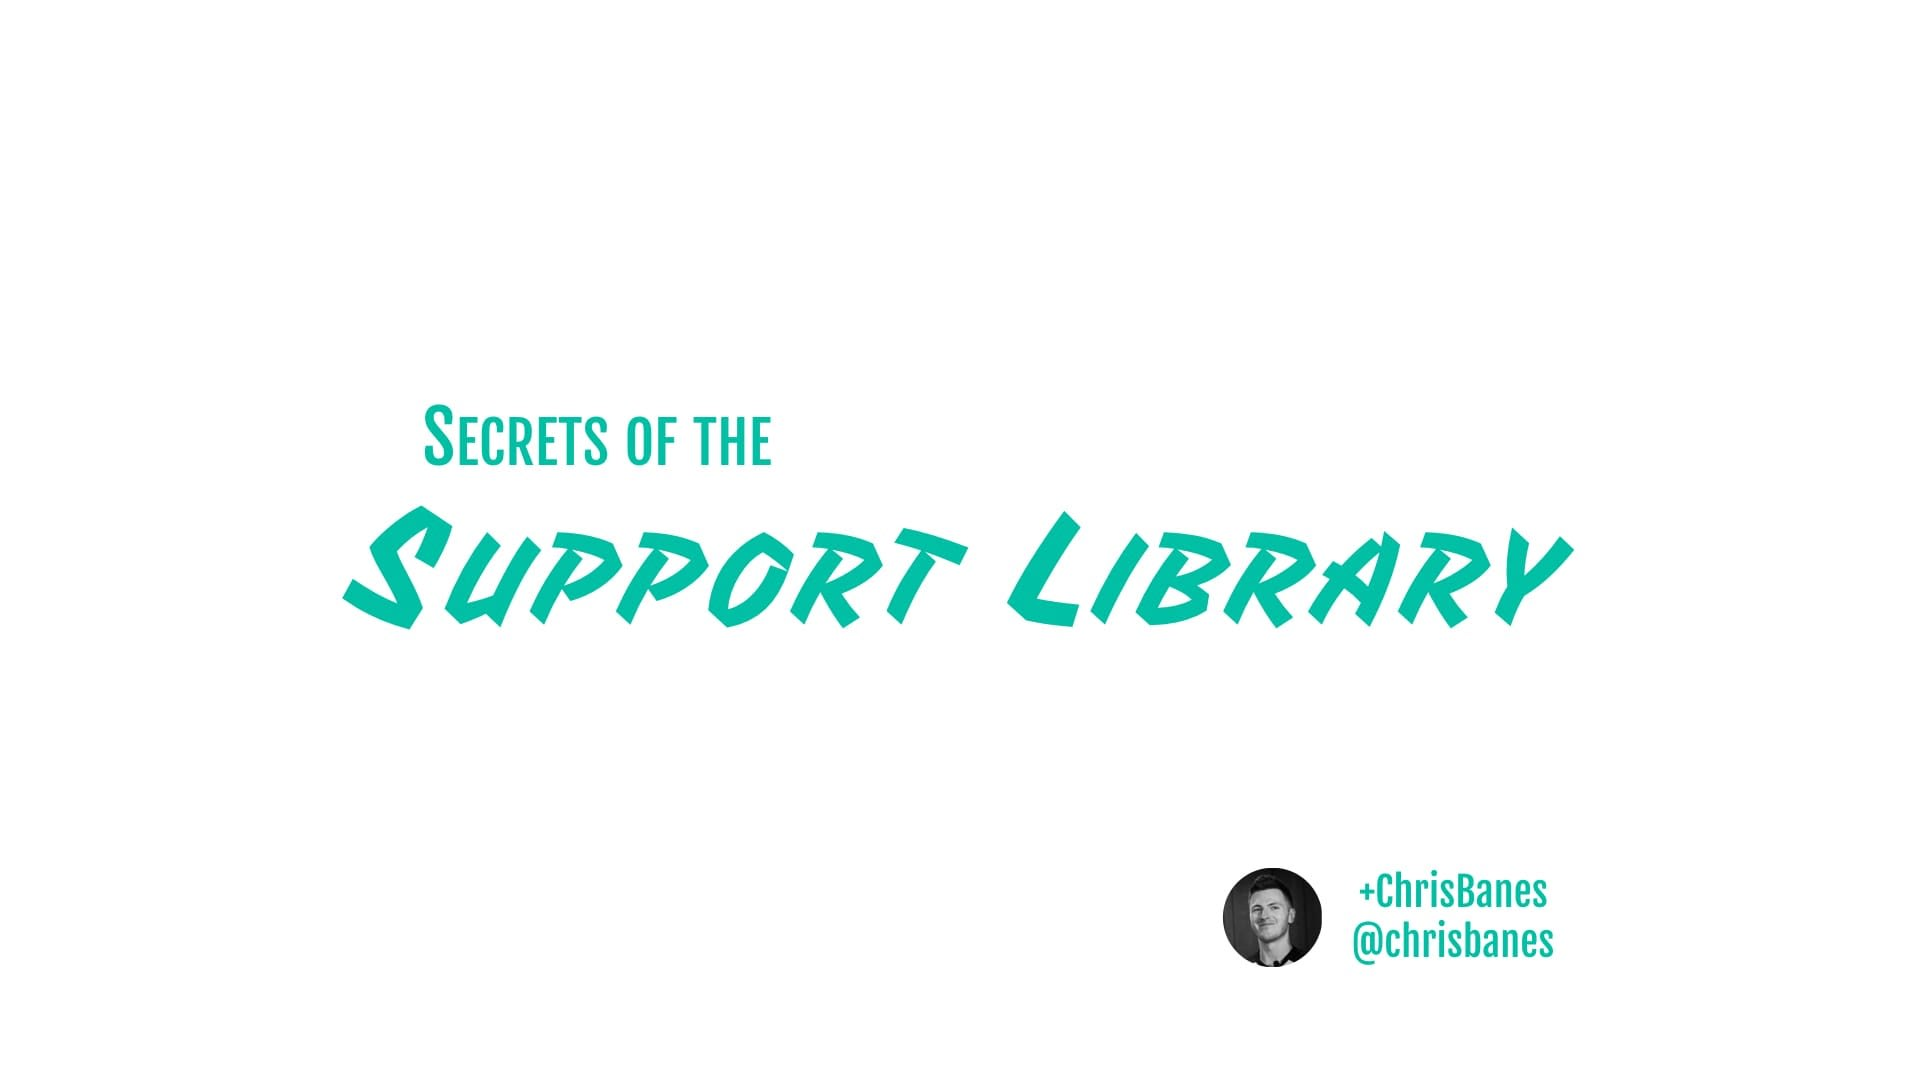 Secrets of the Support Library